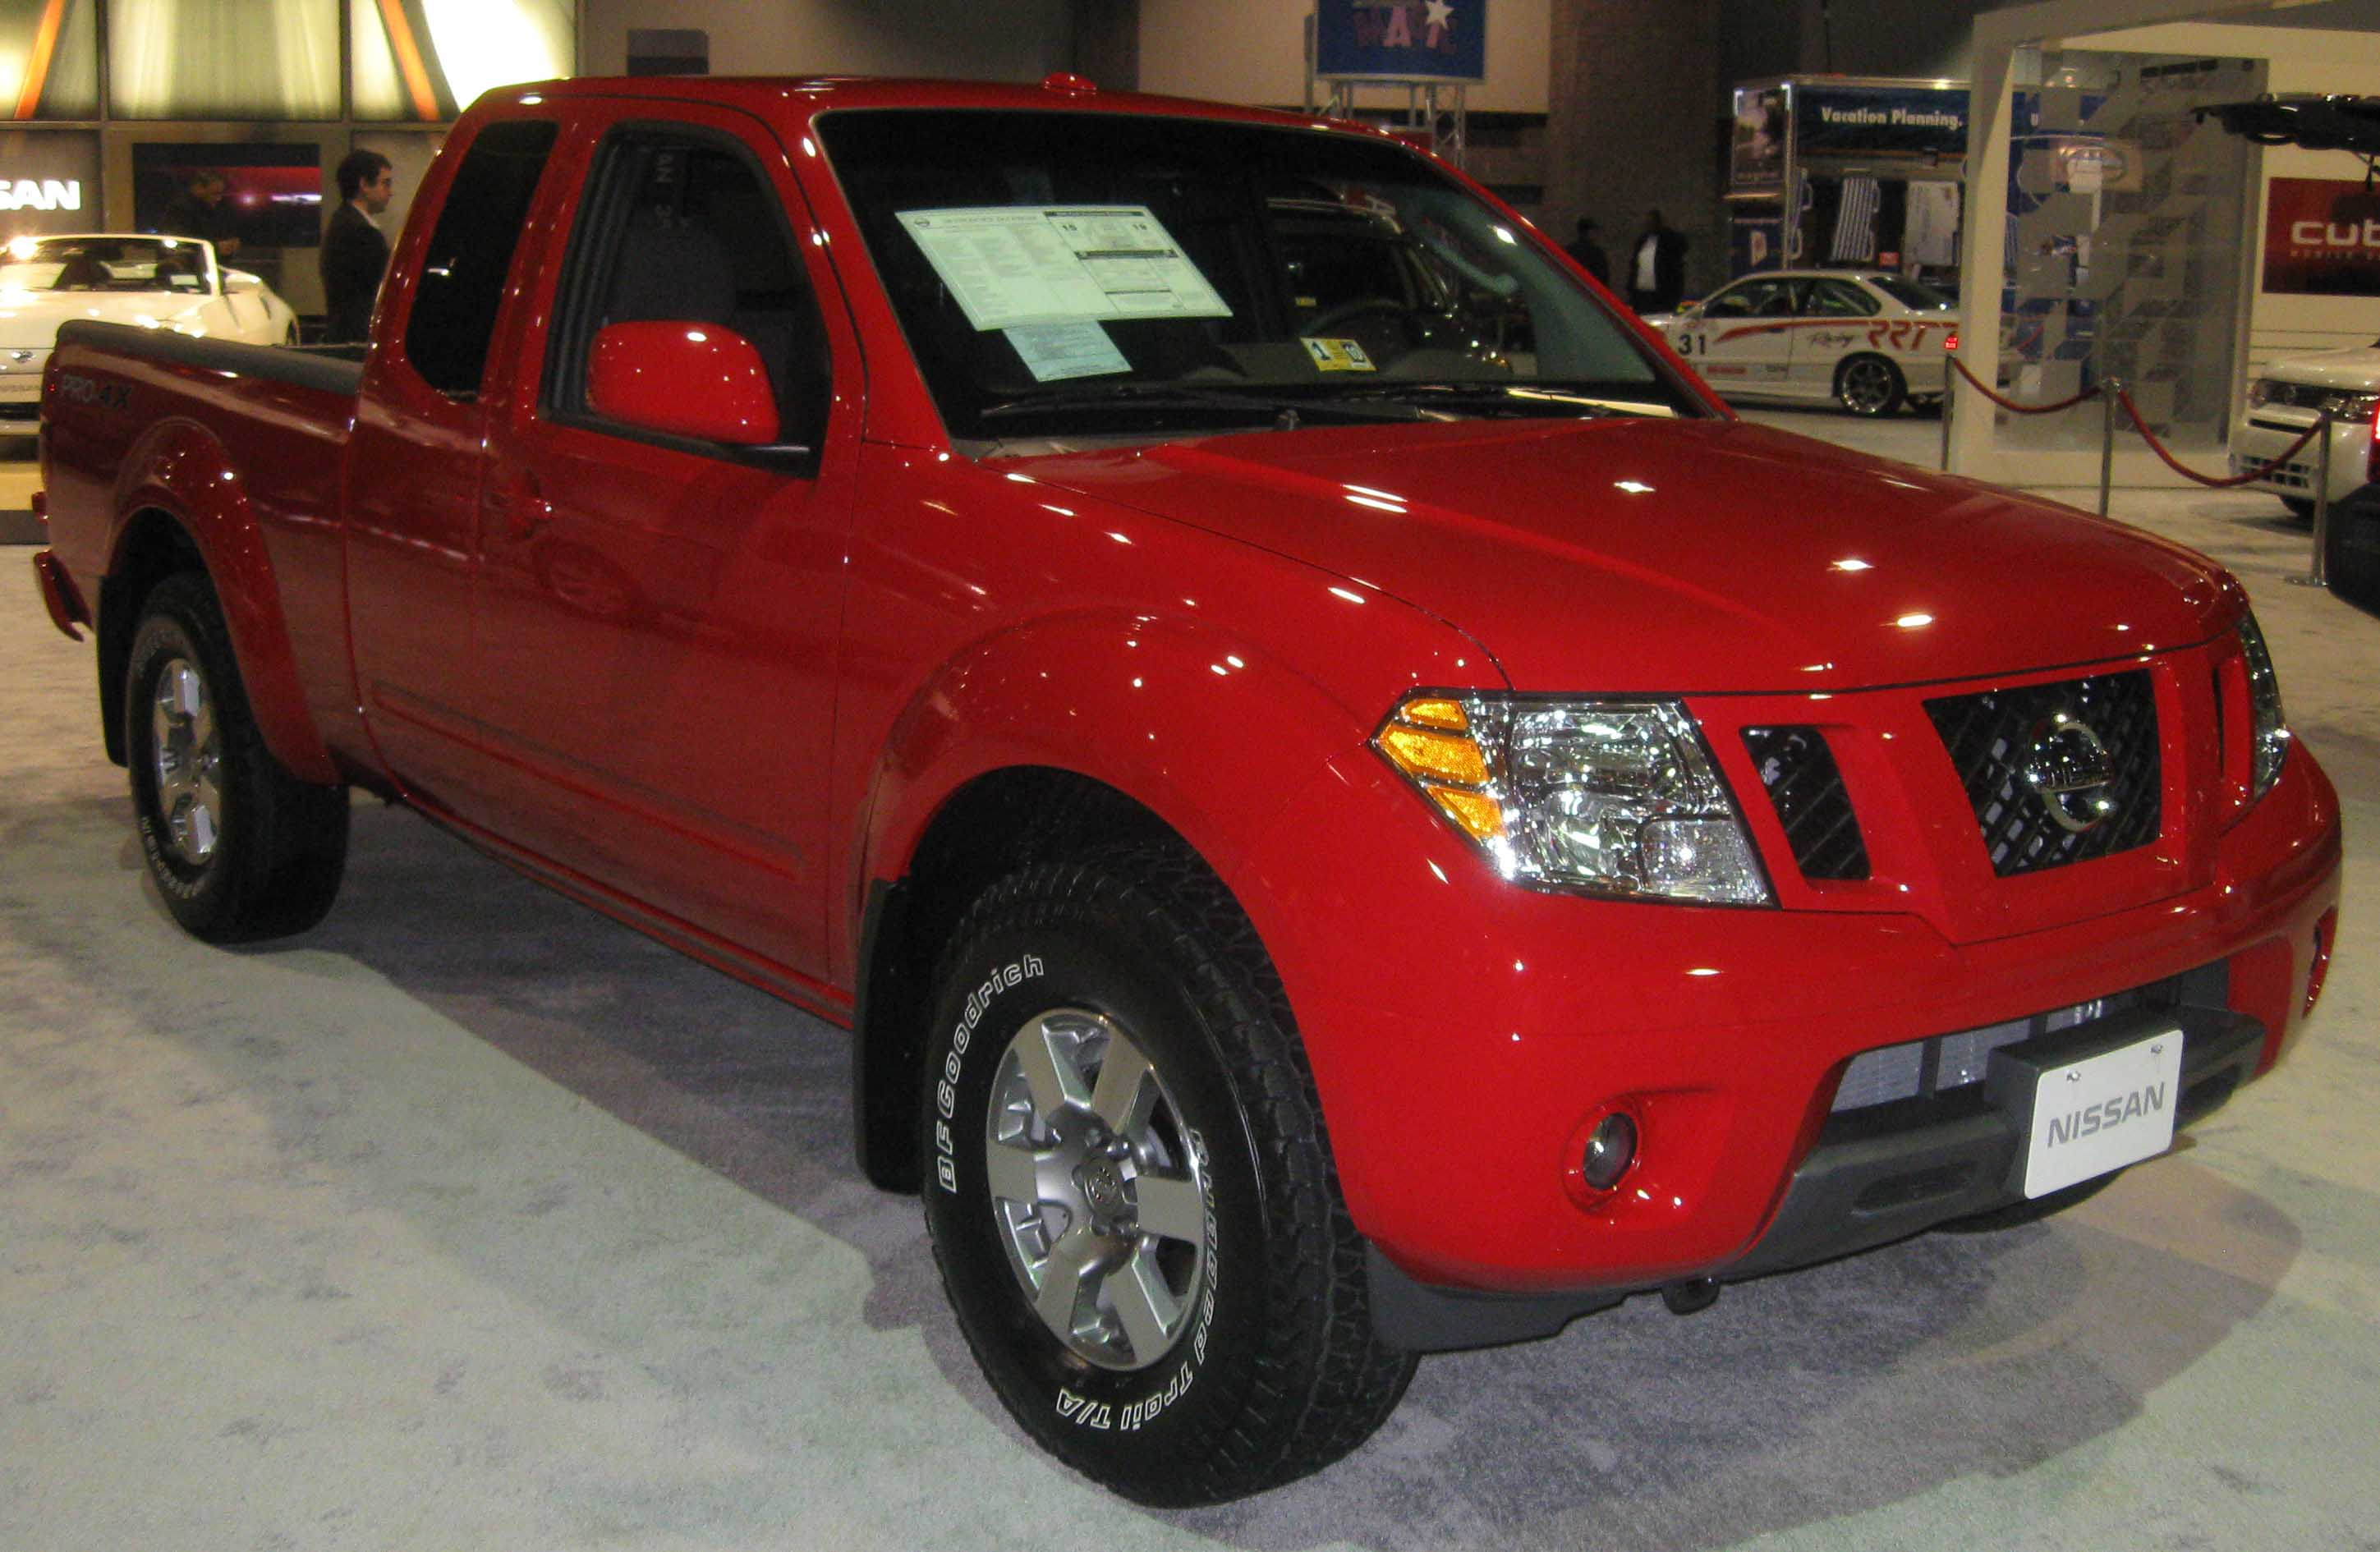 Nissan Frontier red #1